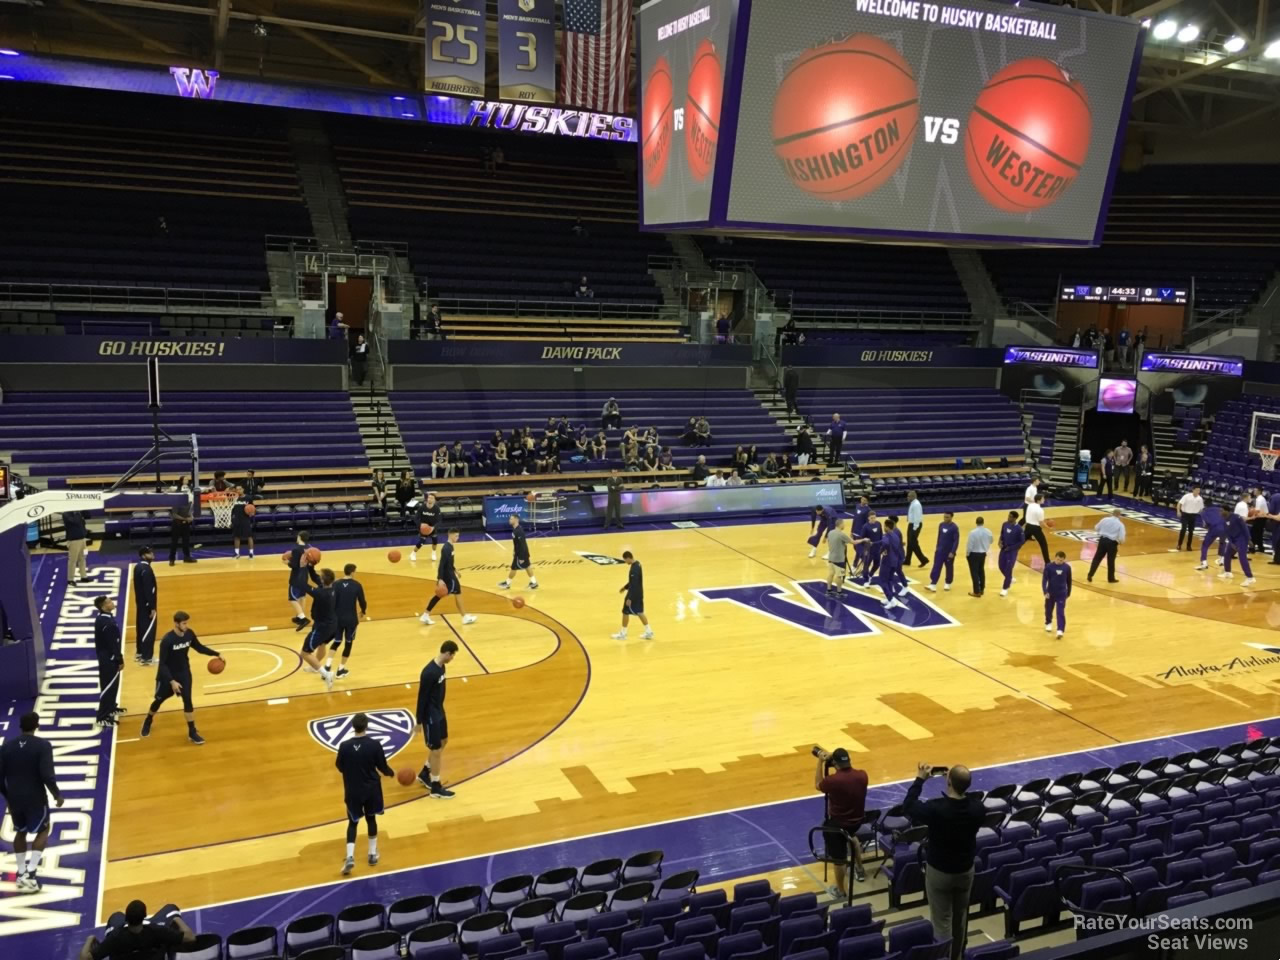 Seat View for Alaska Airlines Arena Section 9, Row 10